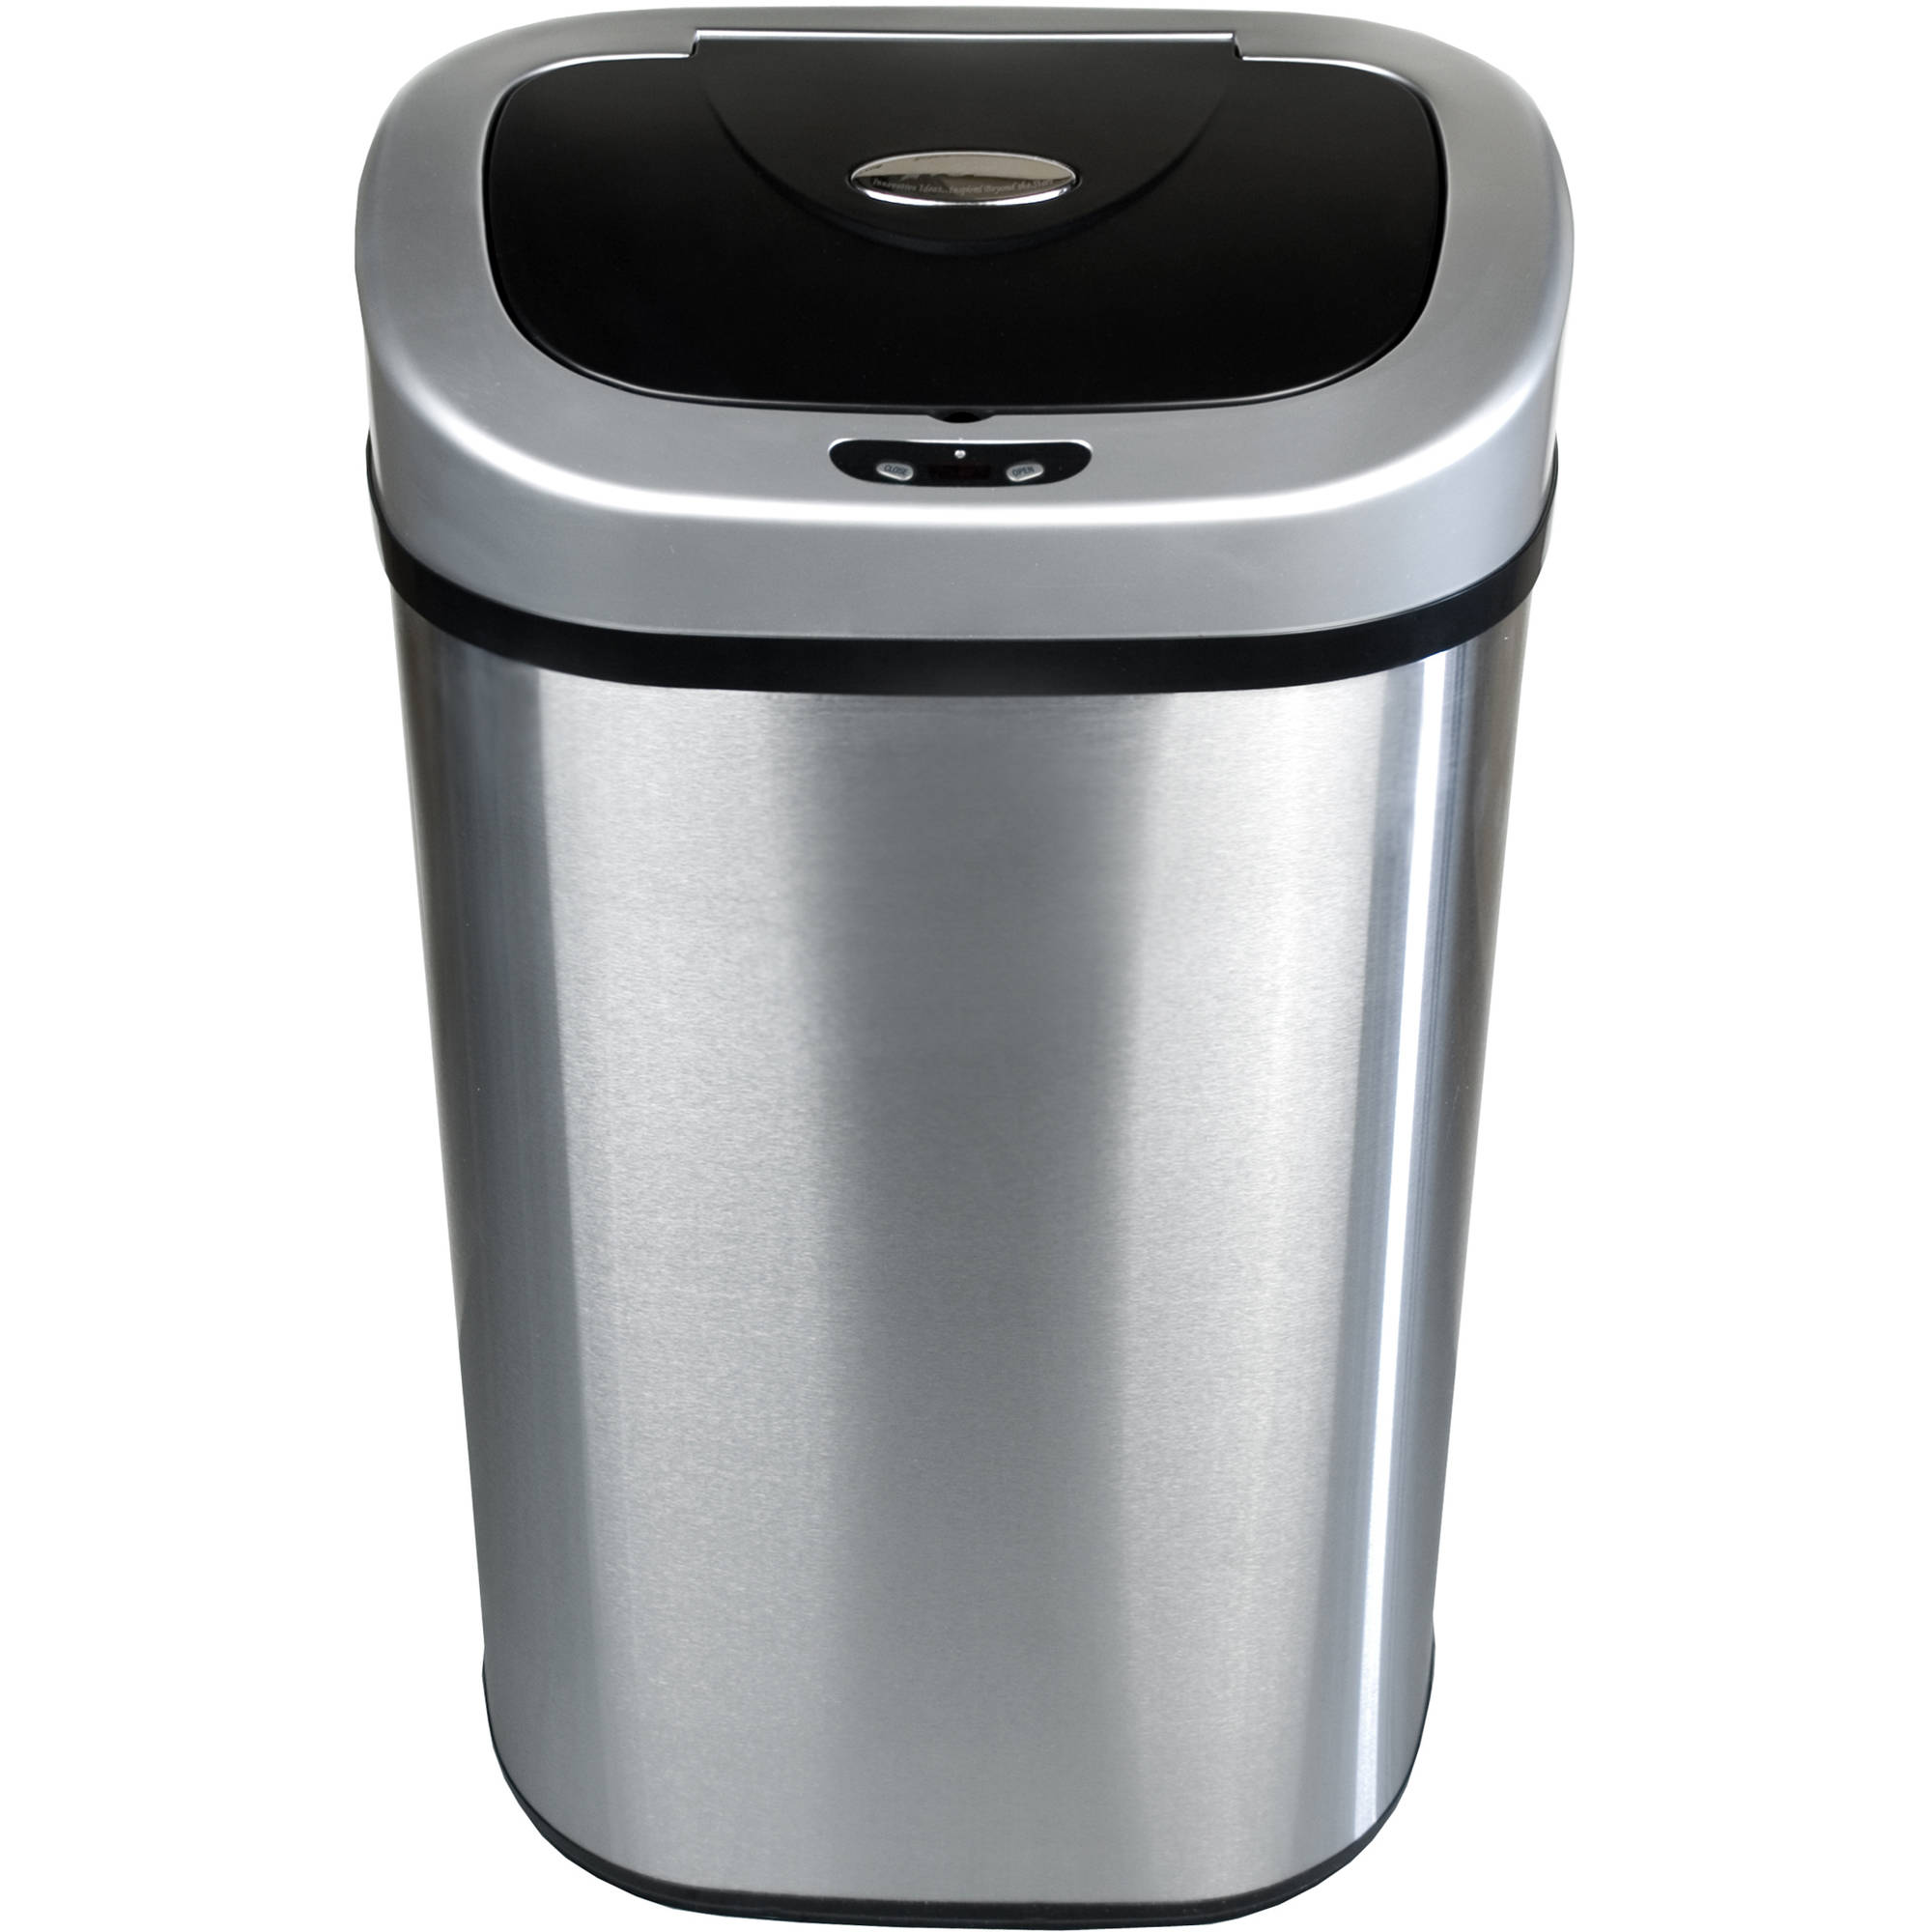 Nine Stars 21.1-Gallon 80-Liter Stainless Steel Sensor Operated Trash Can by Nine Stars Group USA Inc